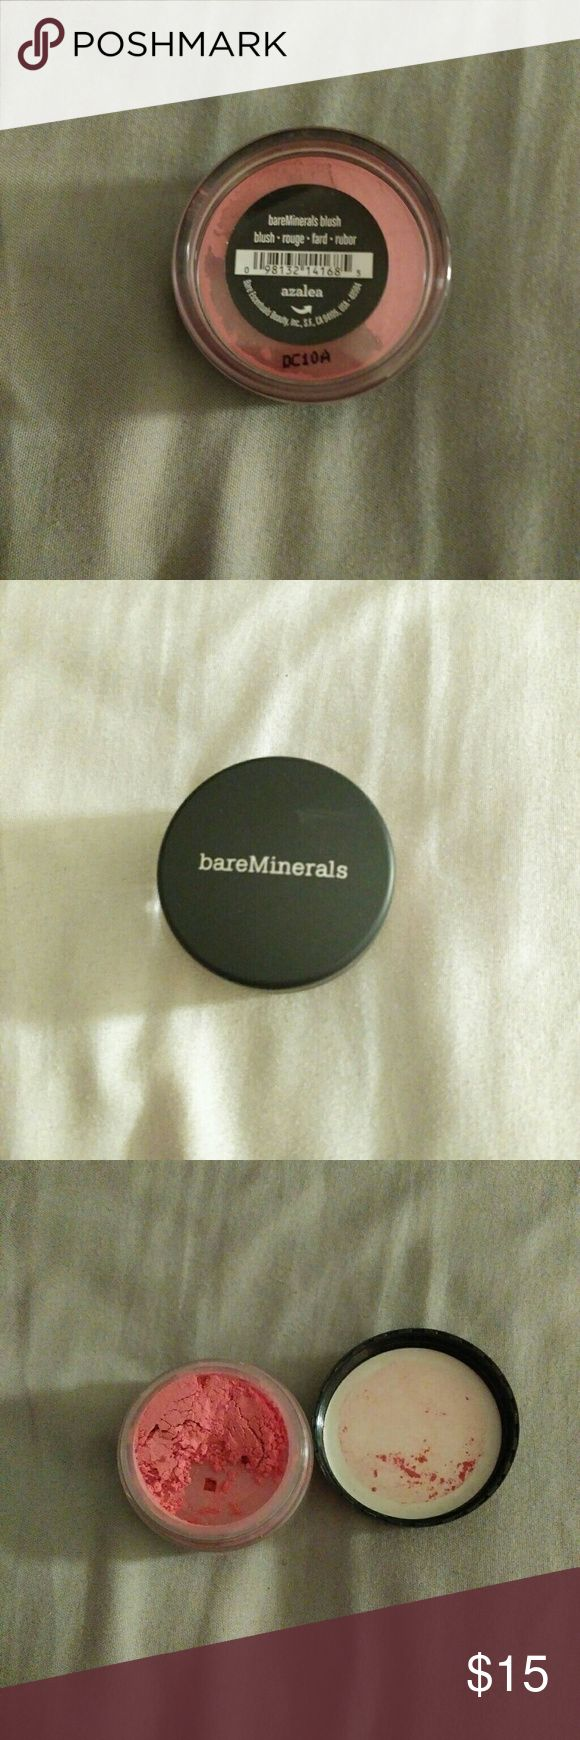 BareMinerals Blush Opened but unused. Color: azalea. Color is accurately shown in picture 3. bareMinerals Makeup Blush